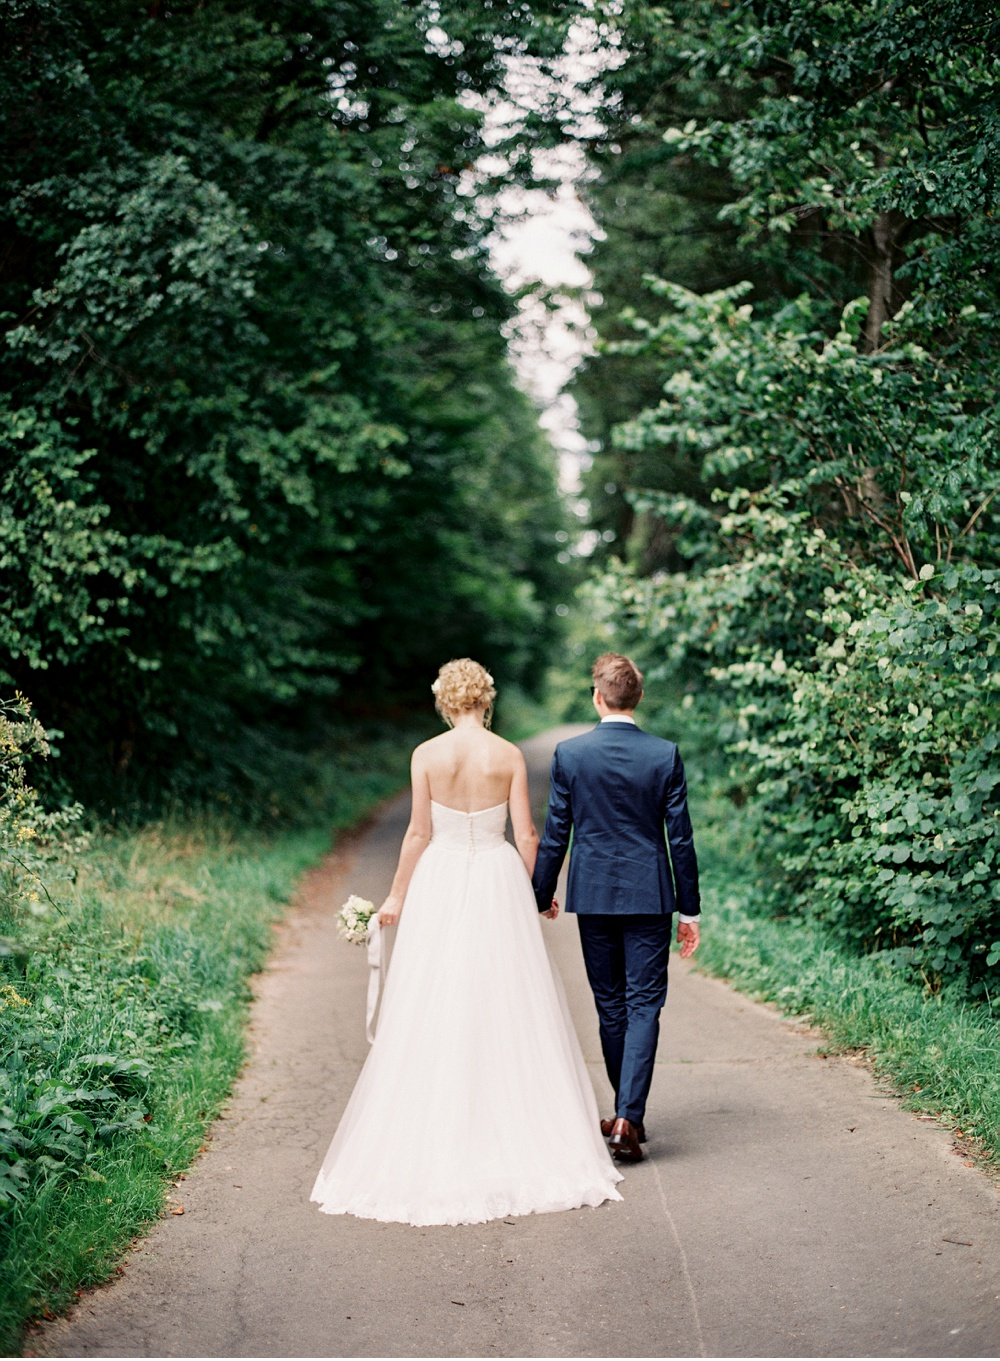 Europe_FineArtWedding_Photographer©MadalinaSheldon_0040.jpg